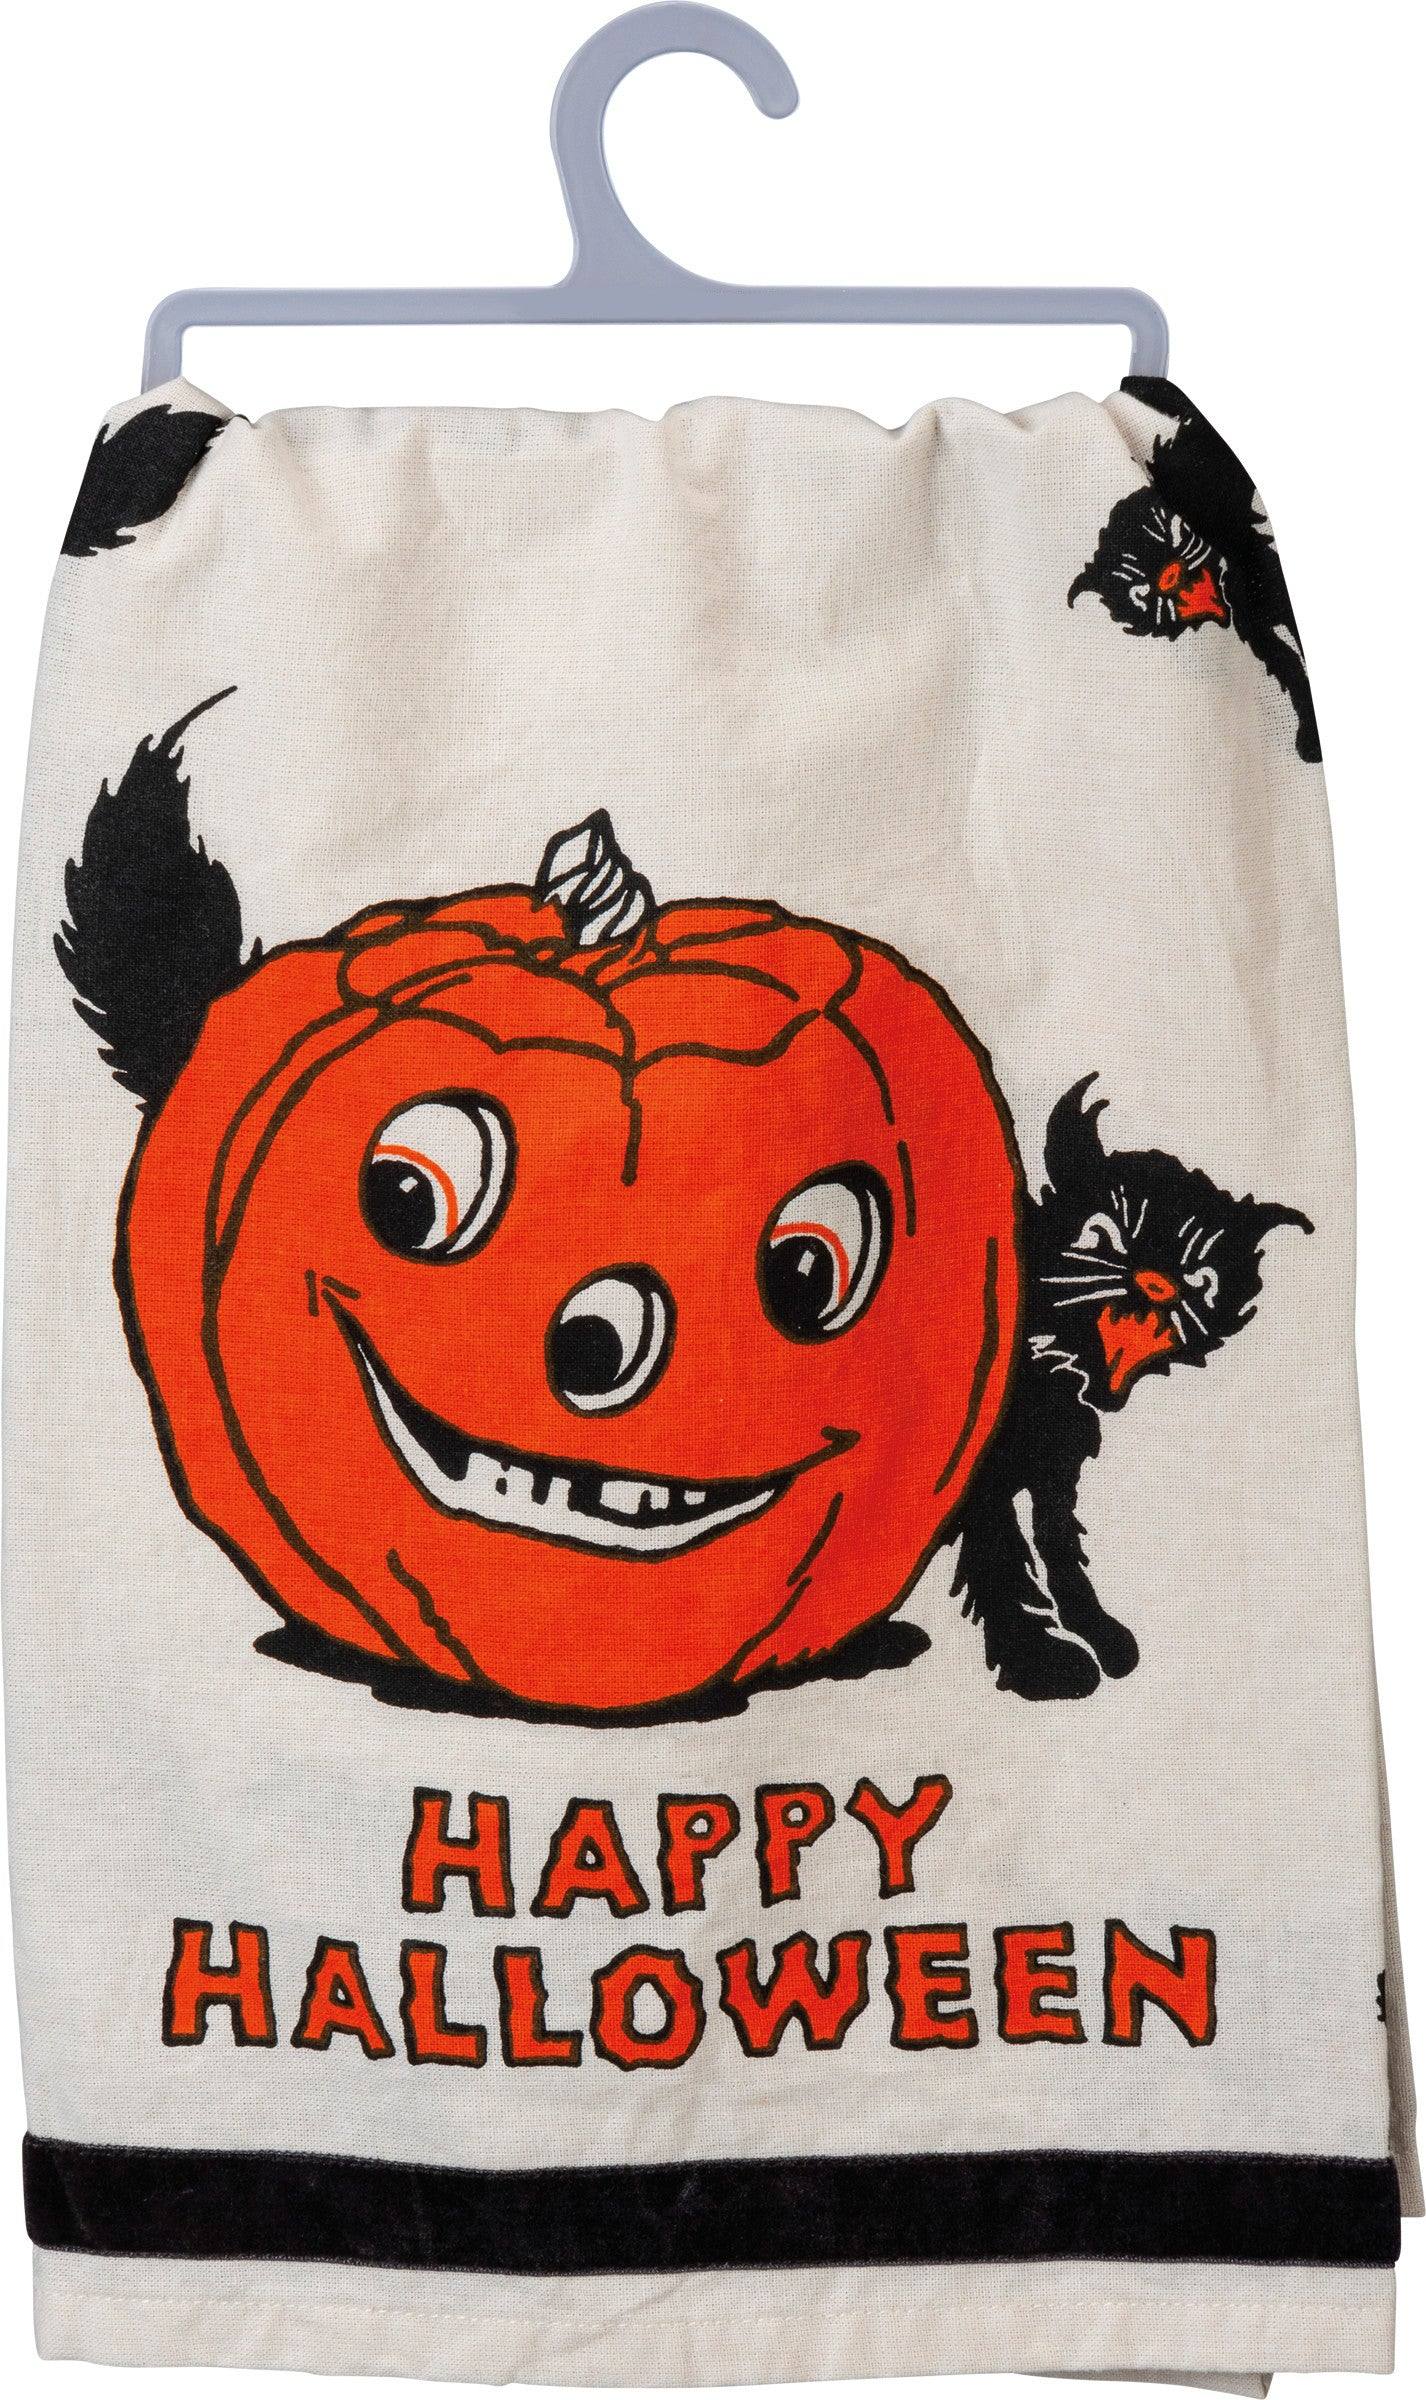 Retro Happy Halloween Towel